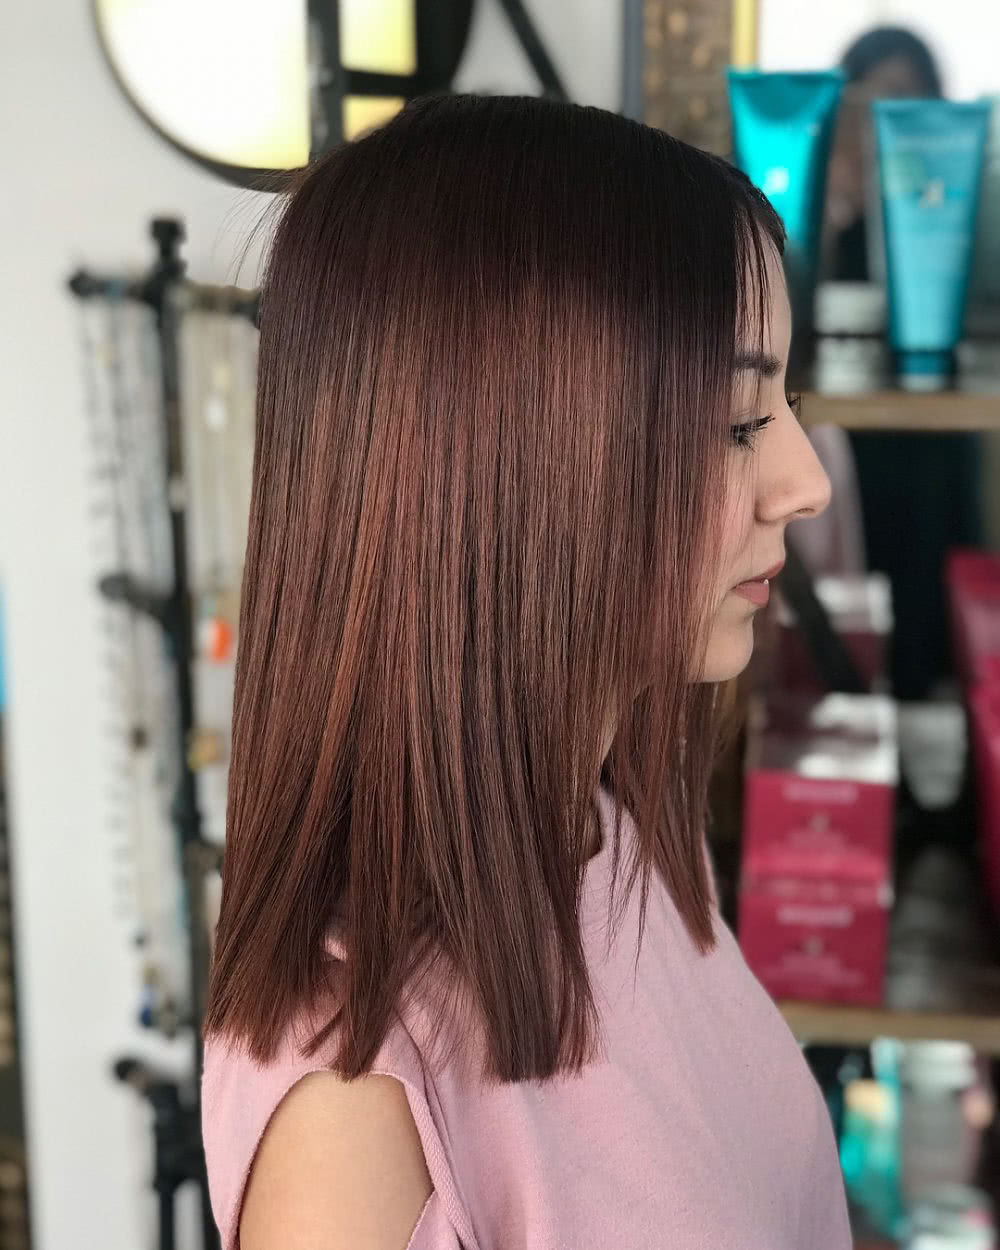 Most Recent Medium Haircuts With Layers For Round Faces Within 17 Flattering Medium Hairstyles For Round Faces In (View 10 of 20)